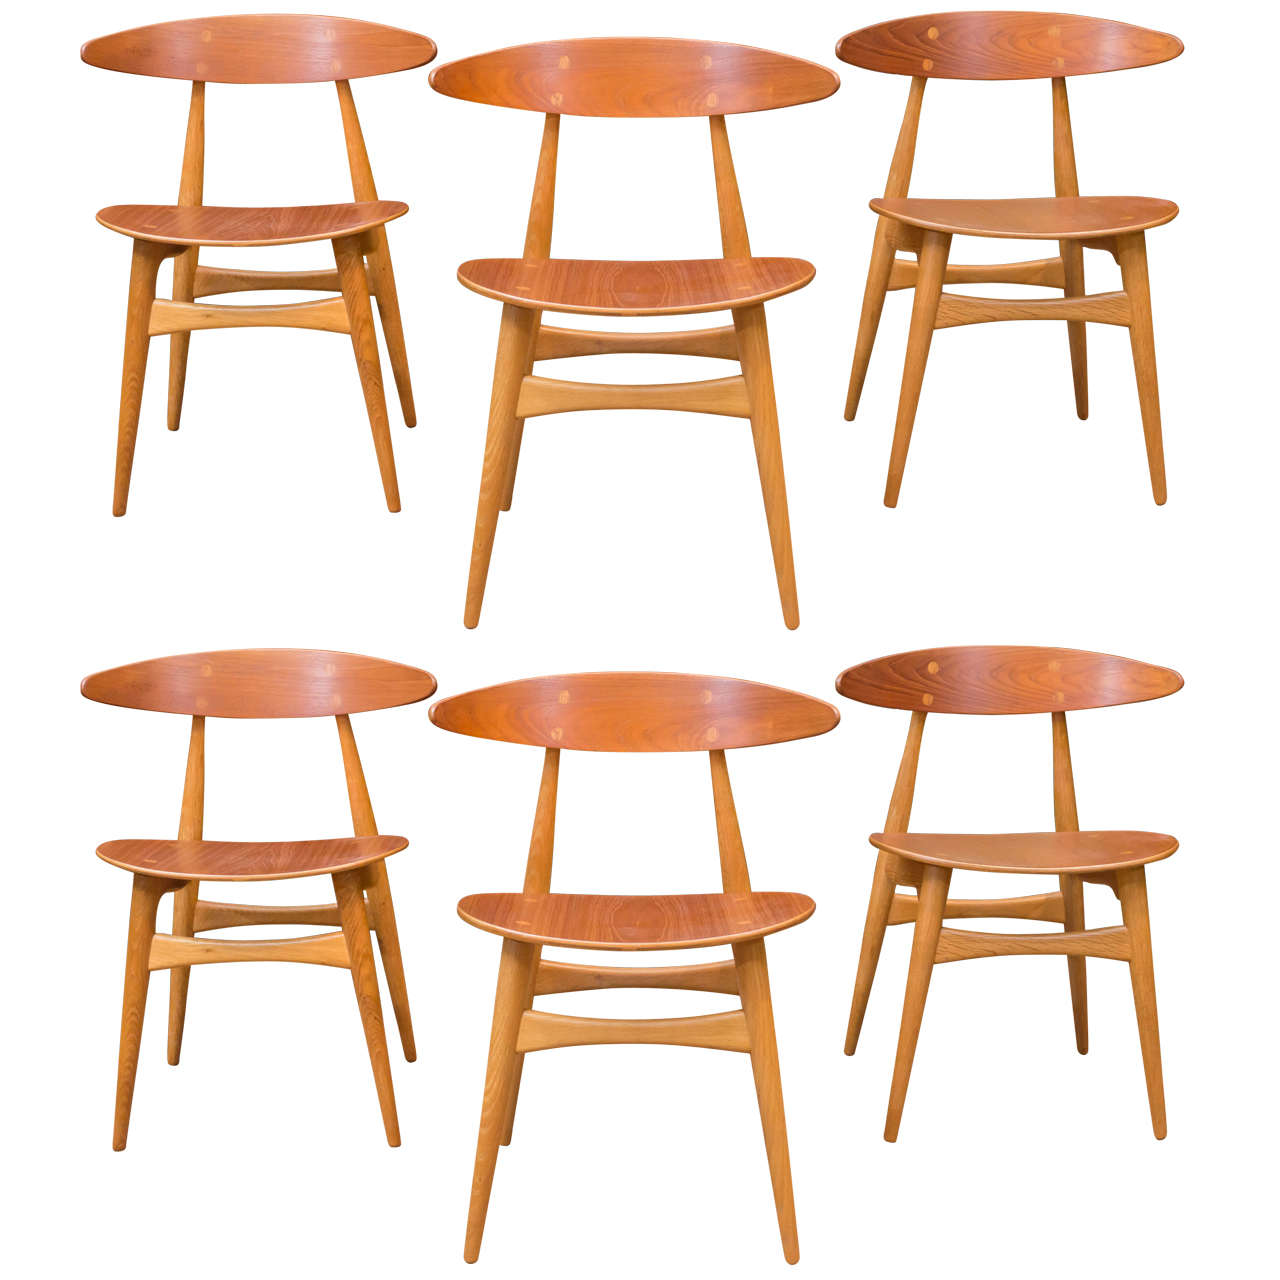 Hans j wegner ch33 dining chairs for sale at 1stdibs for Wegner dining chair